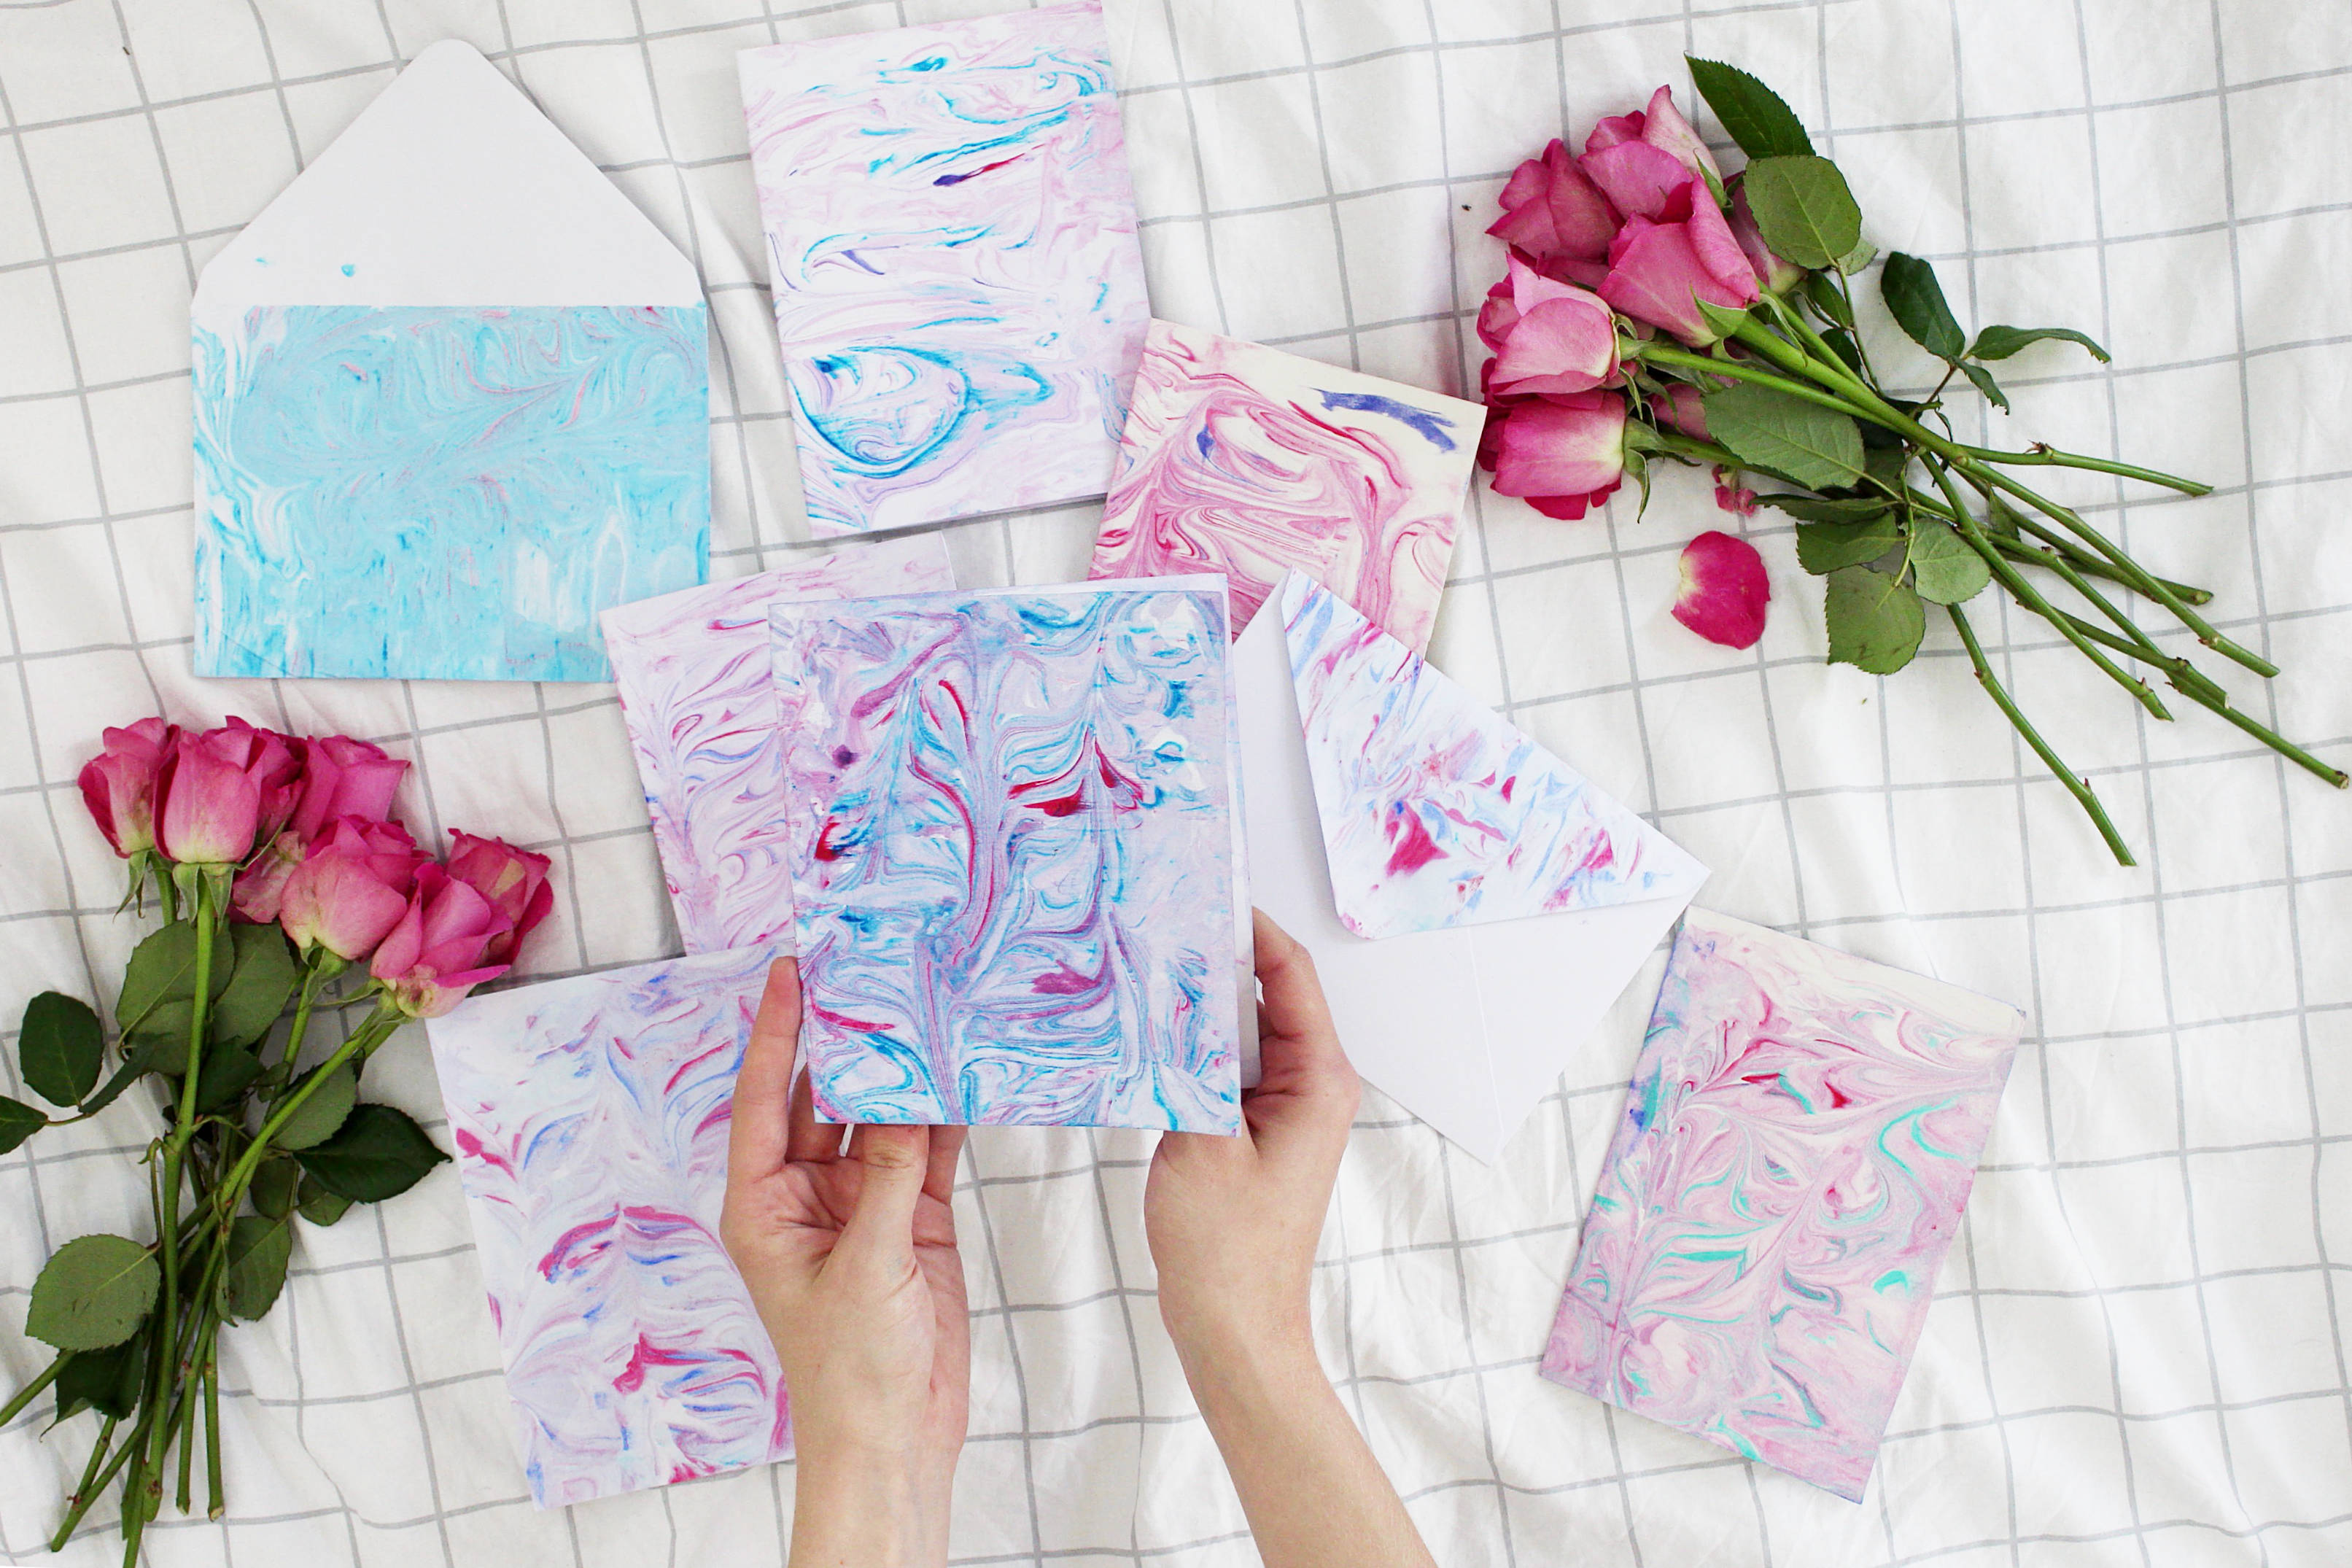 DIY-Marmoriertes-Papier-Madmoisell